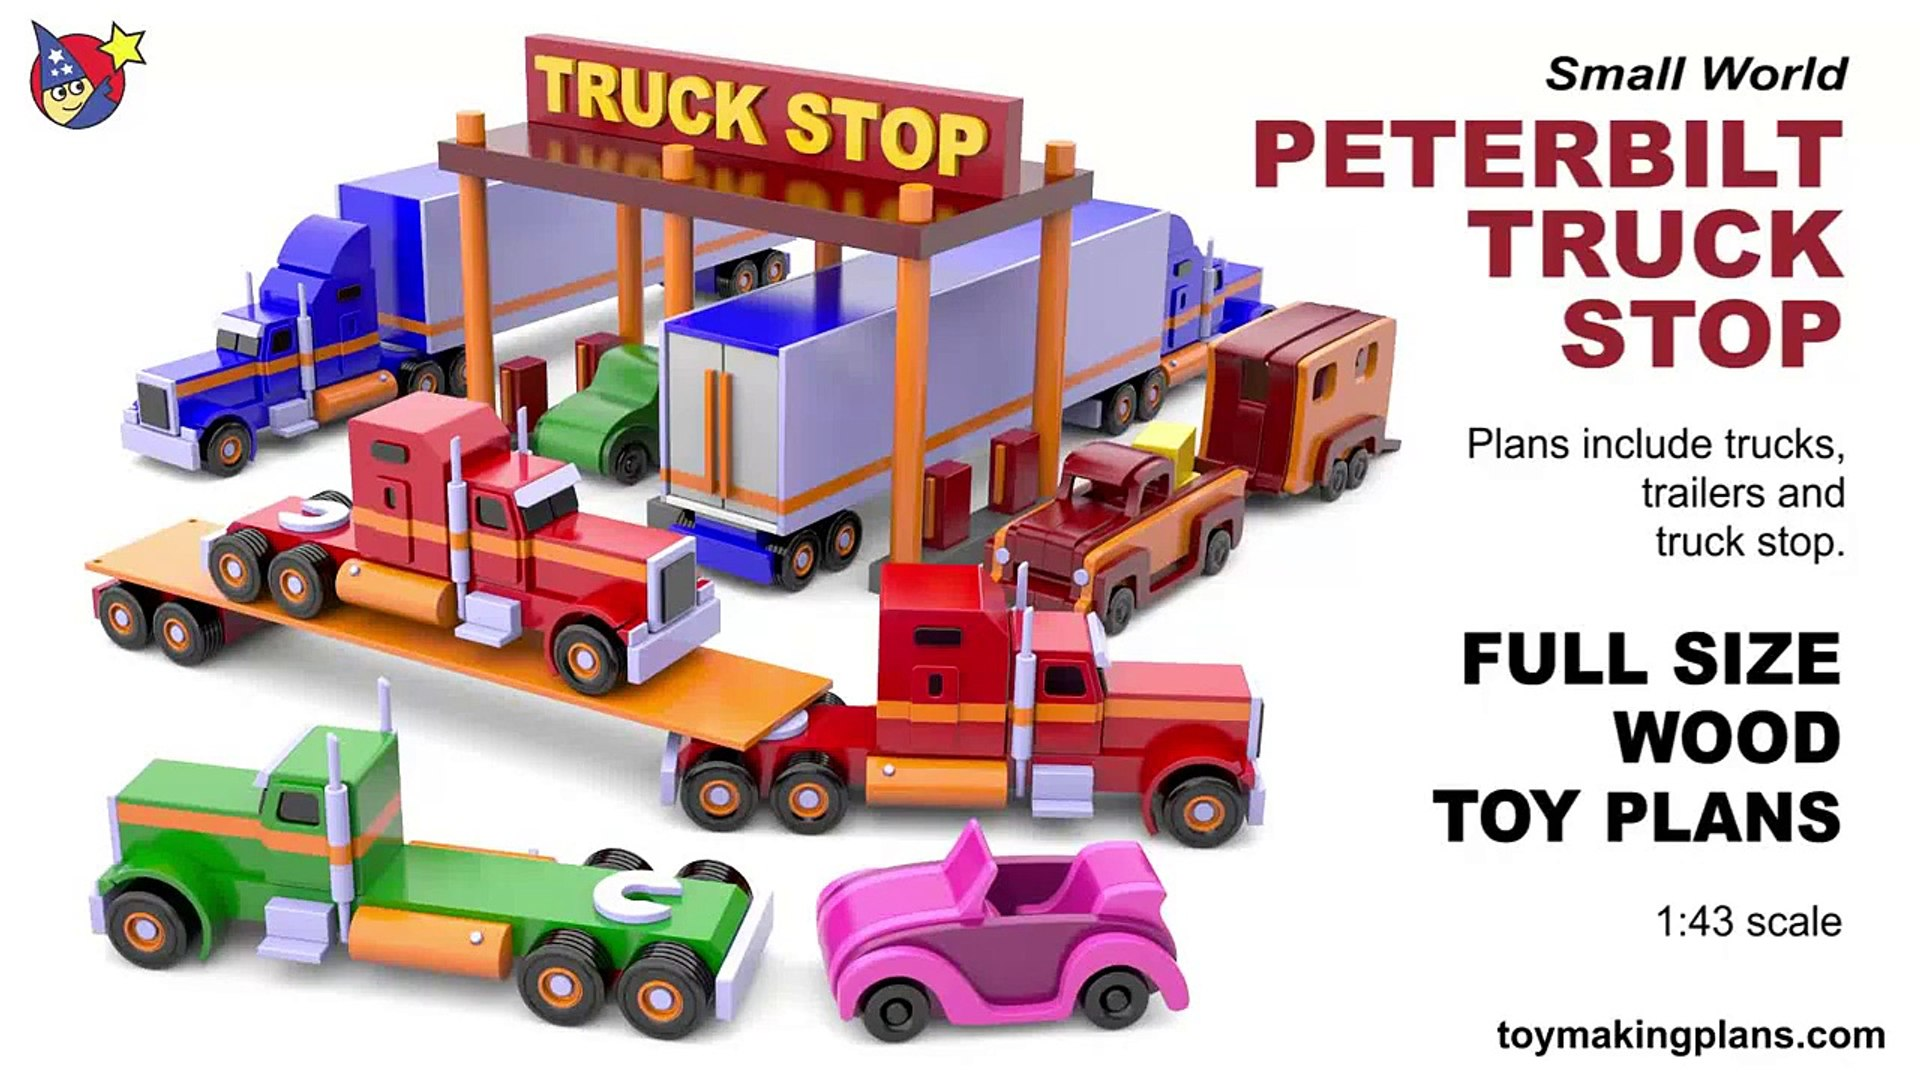 wood toy plans - peterbilt truck stop